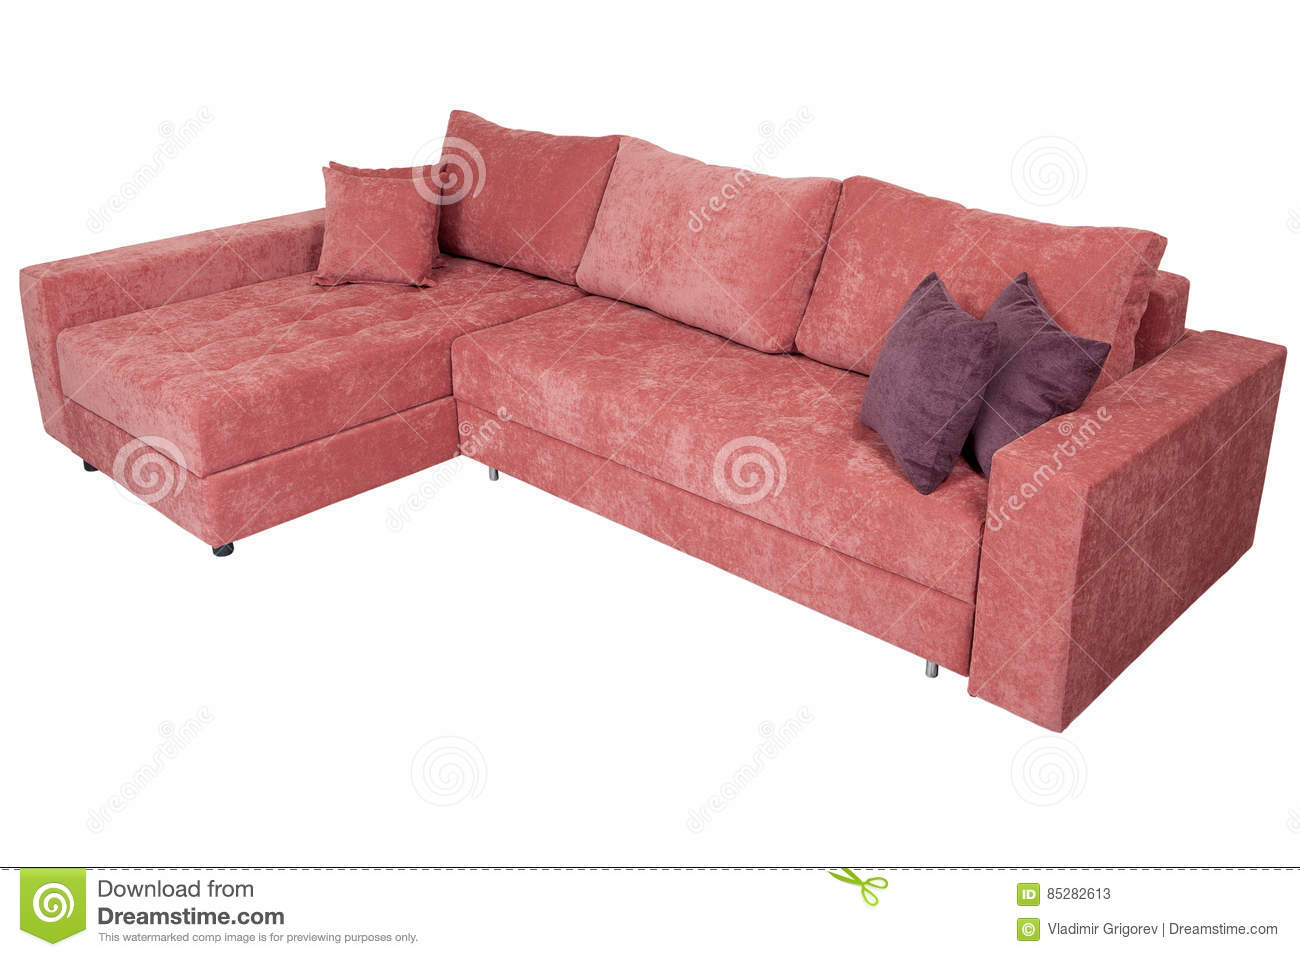 Sofa beds with storage space - Corner Convertible Sofa Bed With Storage Space Upholstery Soft